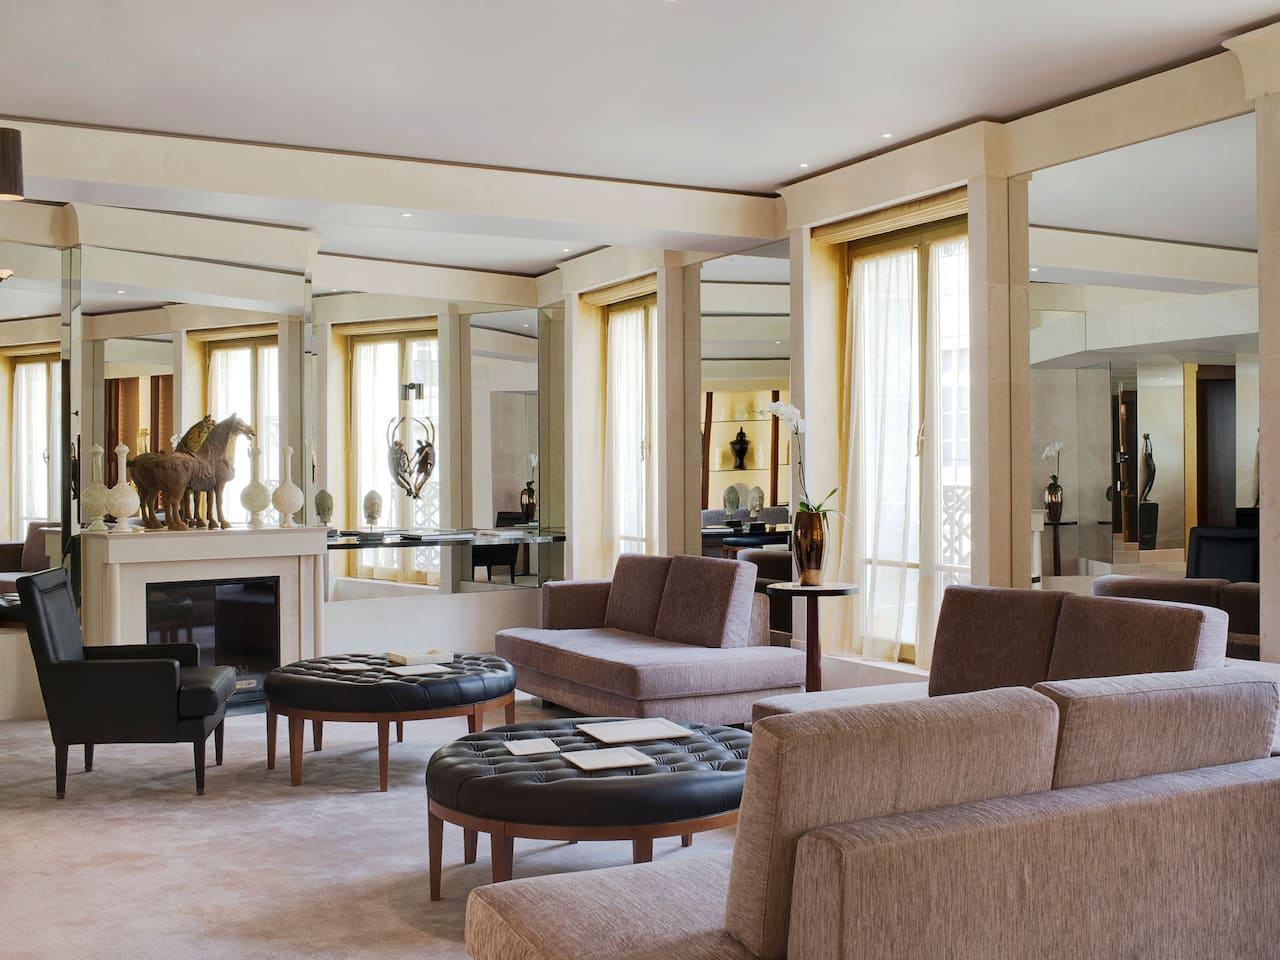 Ambassador Suite at Hotel Park Hyatt Paris-Vendôme